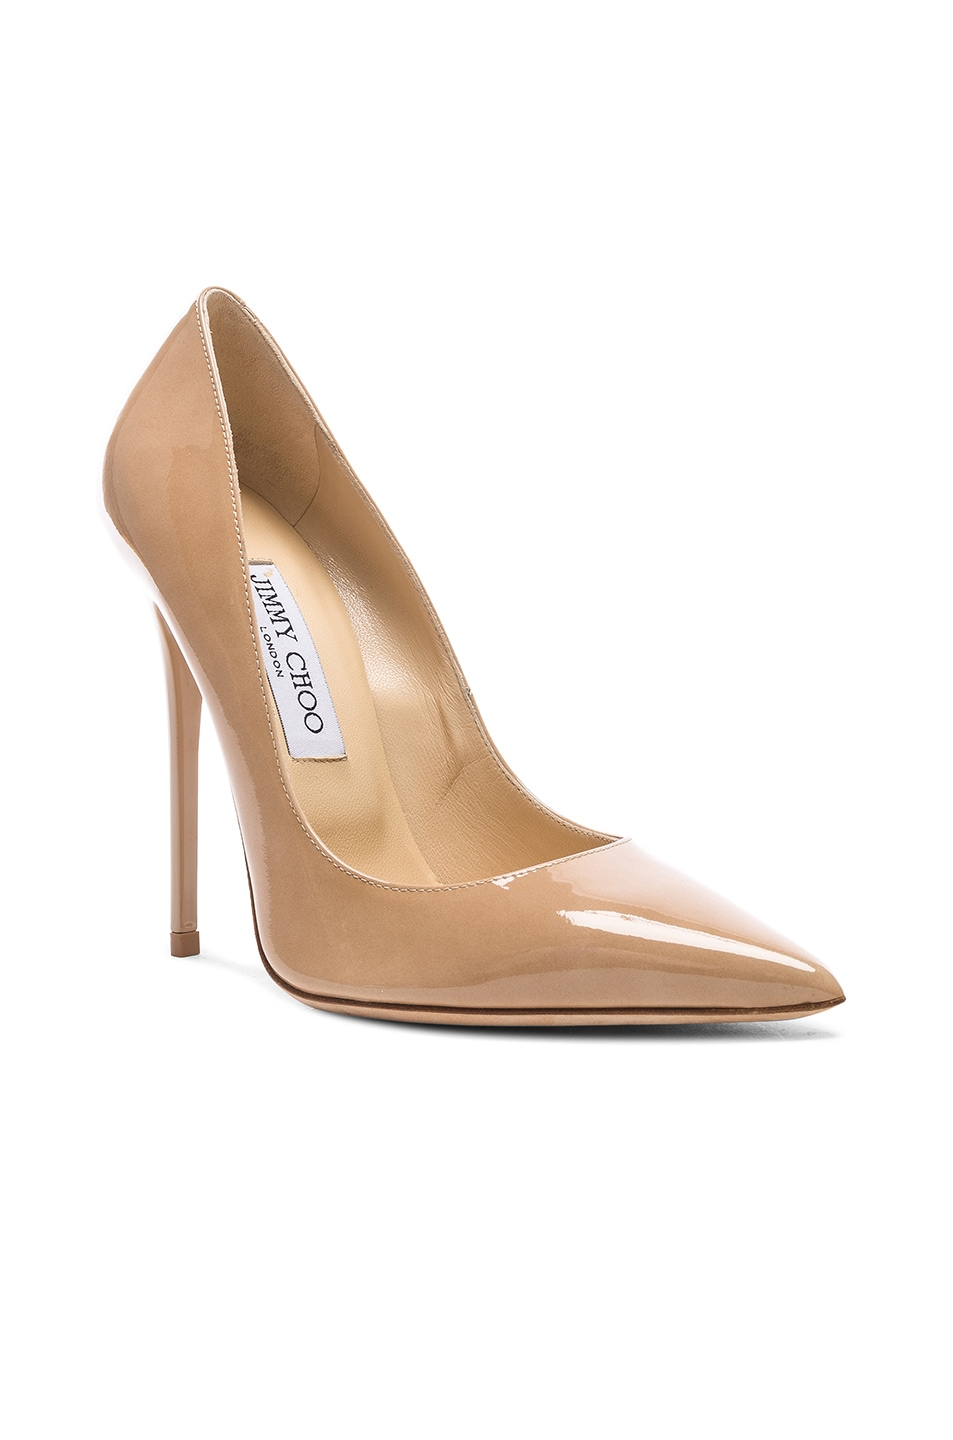 Image 2 of Jimmy Choo Anouk 120 Patent Leather Pump in Nude